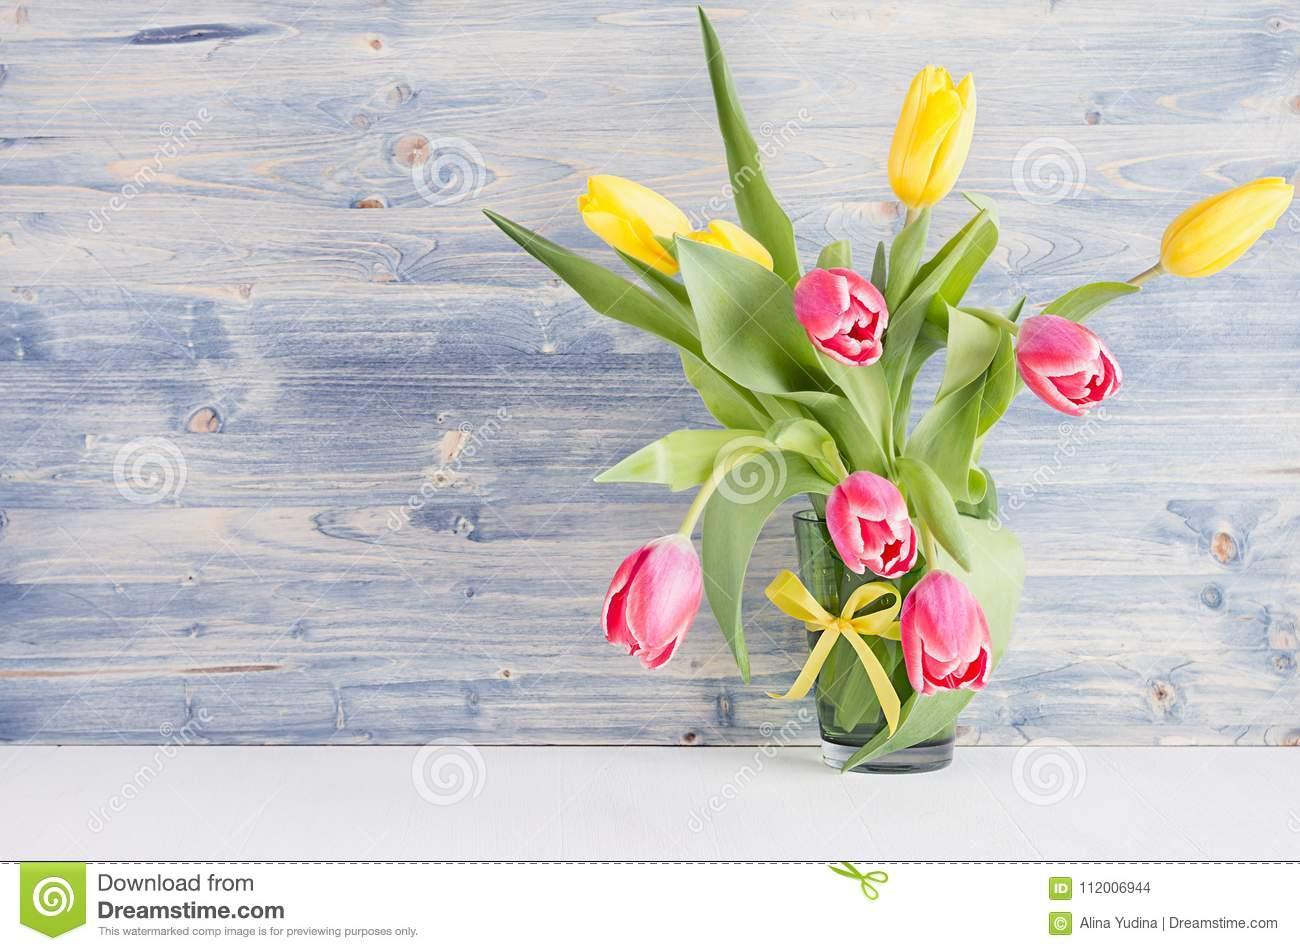 Yellow and red tulips in vase on blue shabby chic wood board. April spring background, home interior, decor.